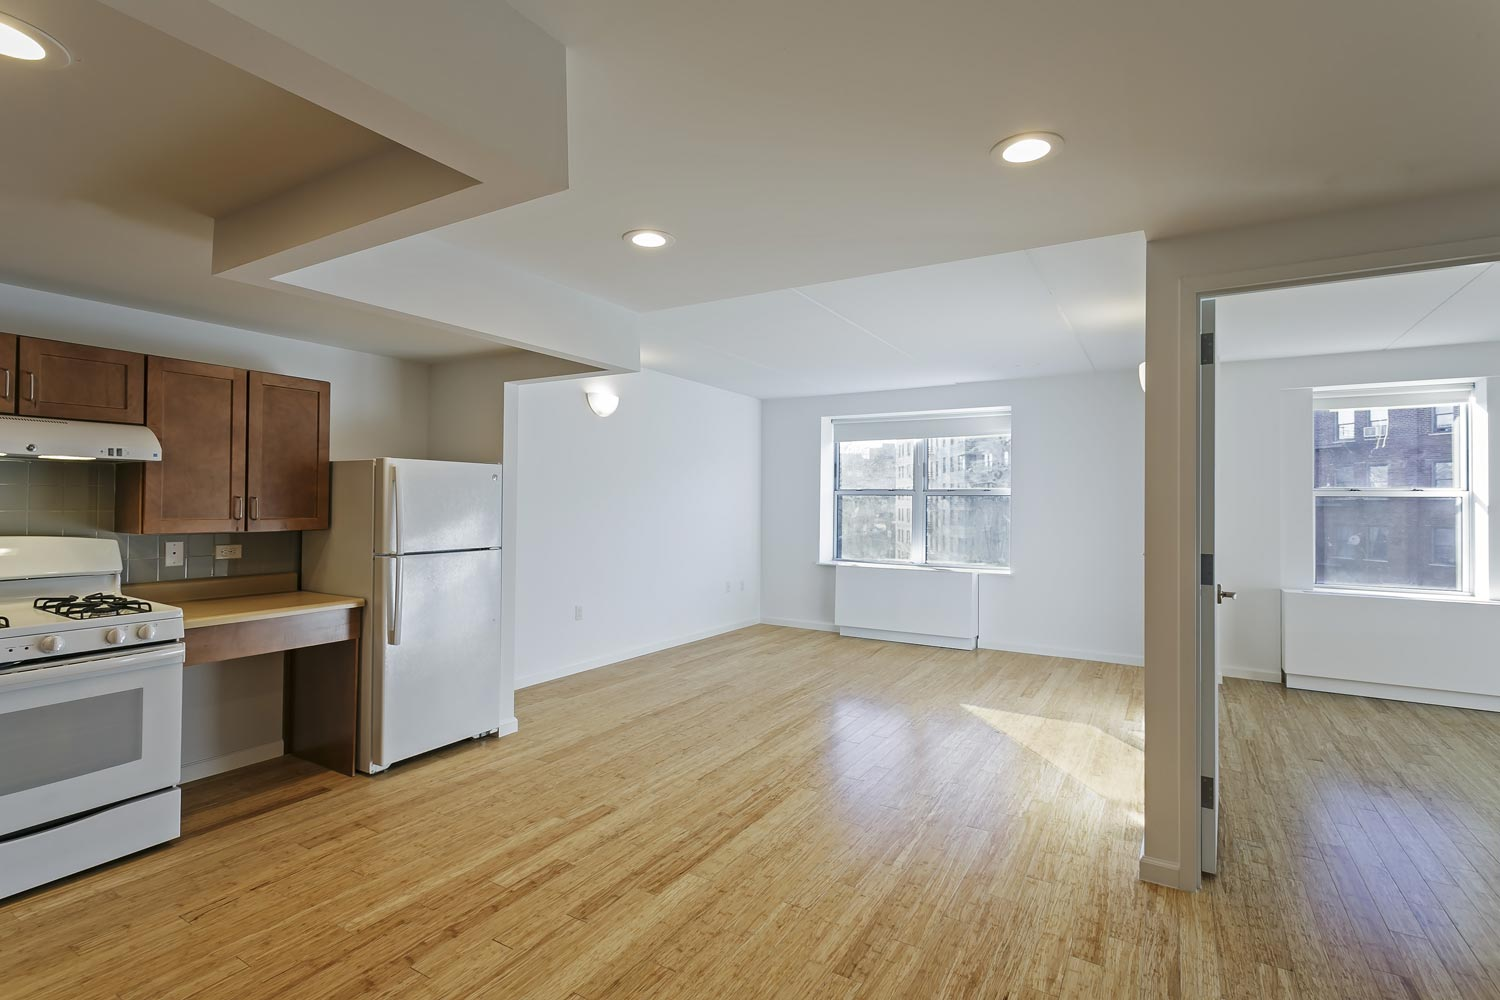 Apartments are designed with open plans and are fully accessible to persons with disabilities.